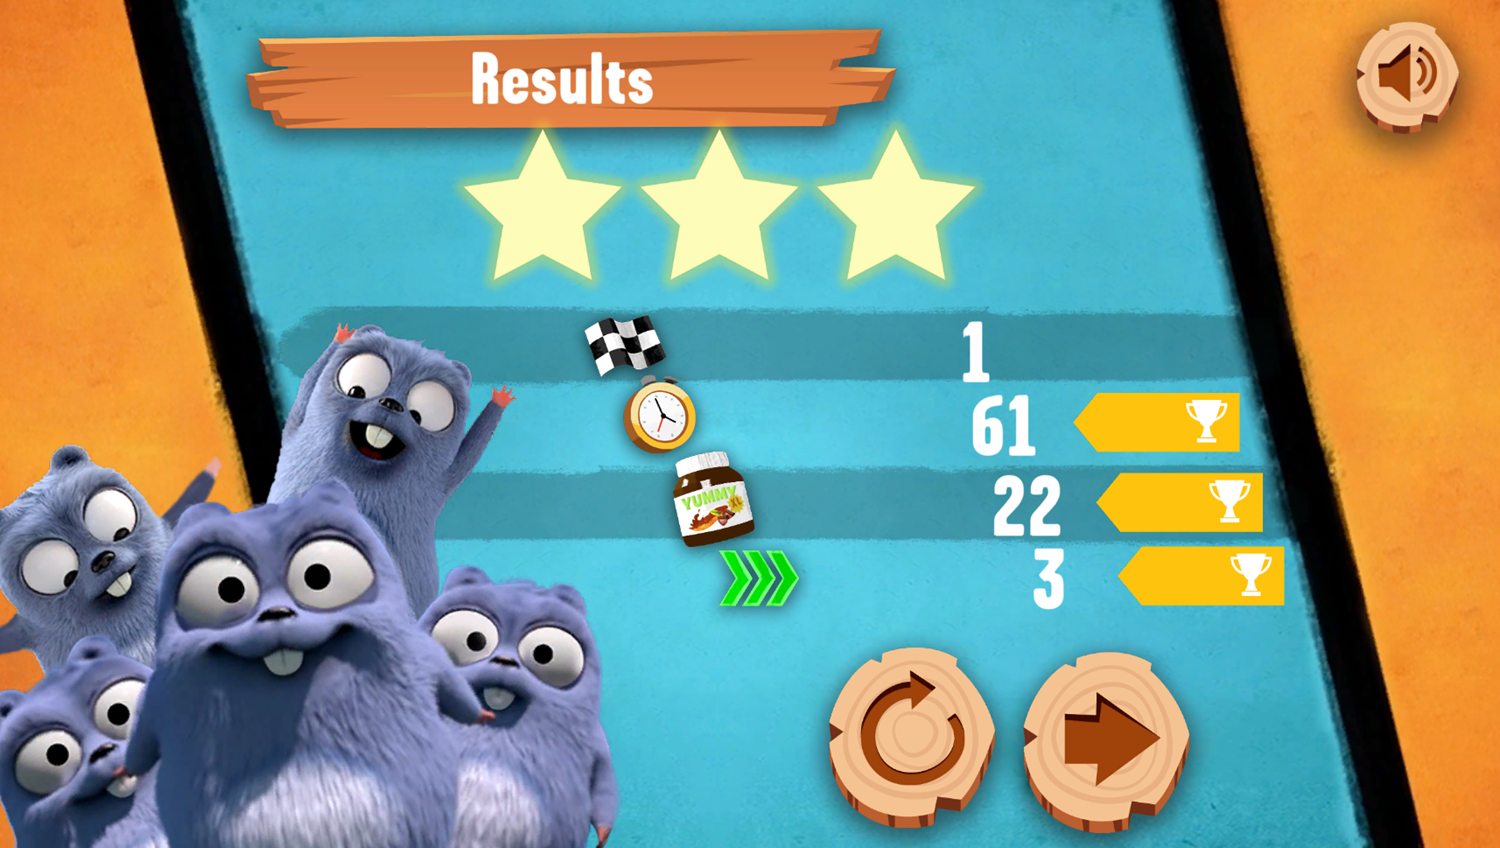 Grizzy and the Lemmings Yummy Run Game Results Screenshot.